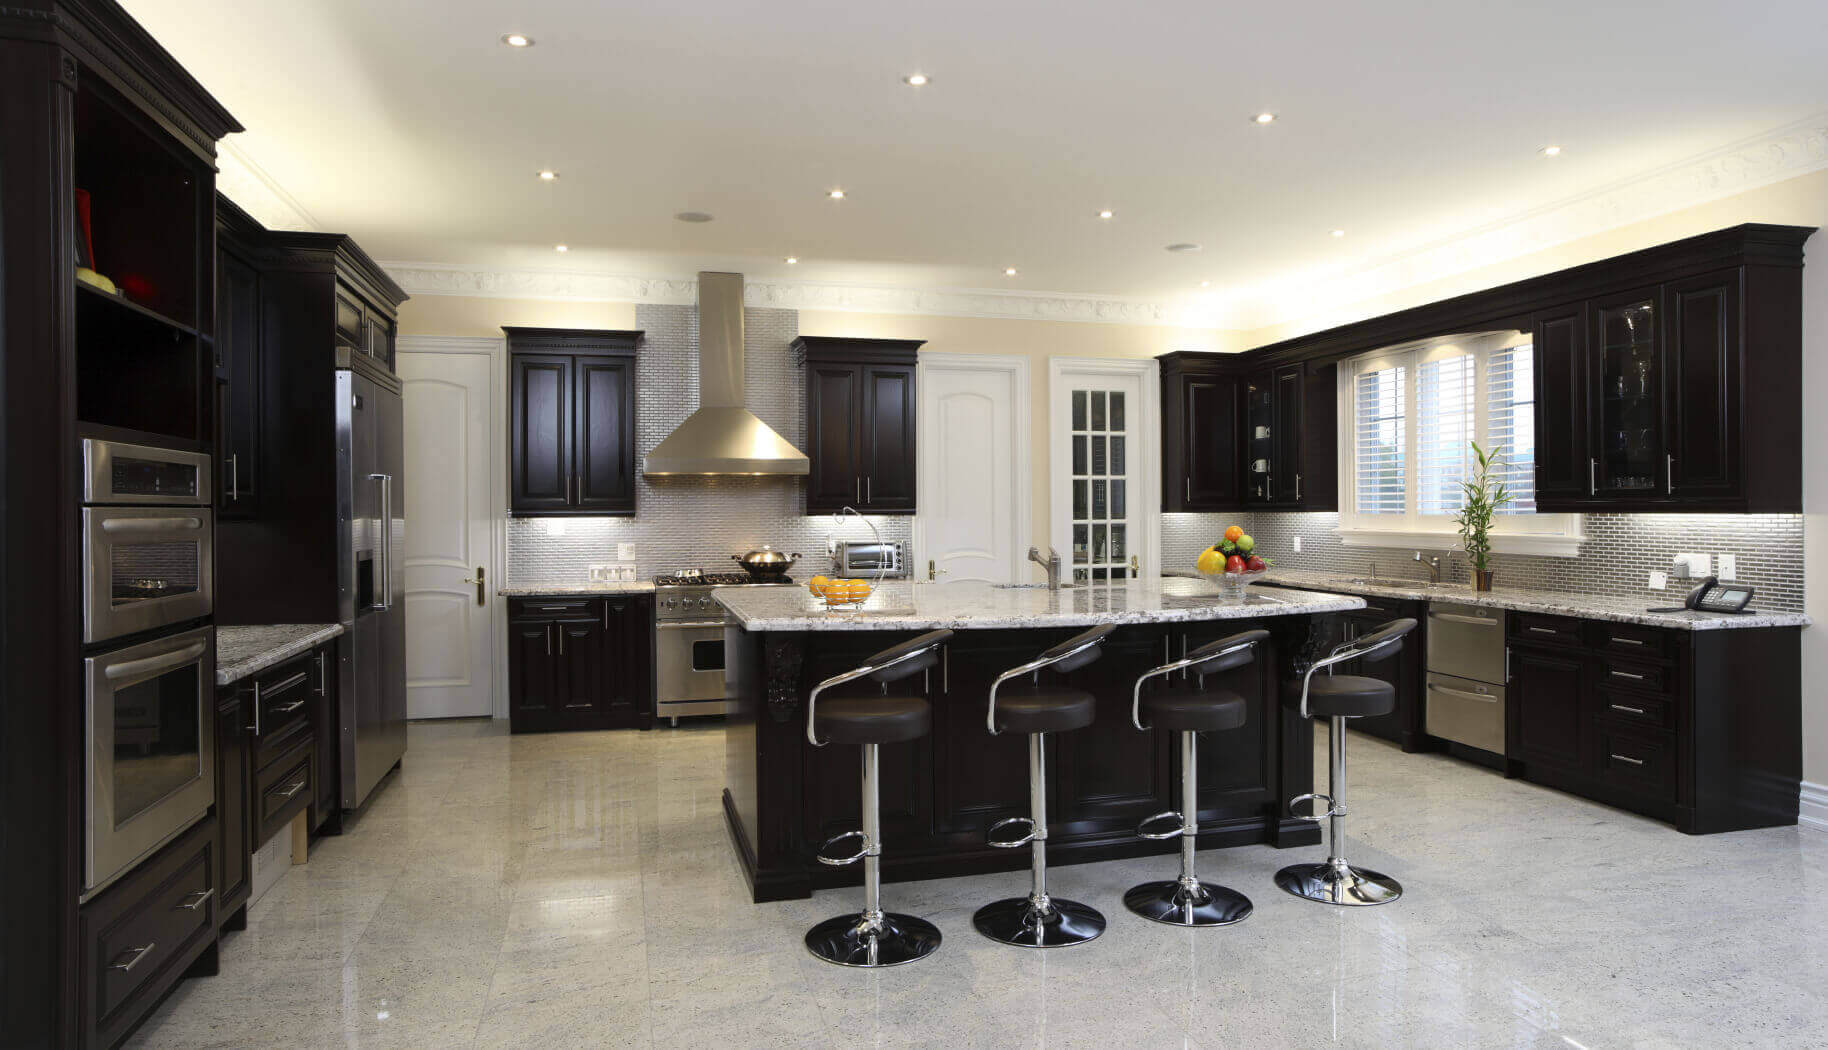 Perfect modern kitchen colors selections help in creating a kitchen space that would otherwise be lost in darkness. The bright contrasting colors on the background accent by dark cabinets help make the space jump out at the viewer